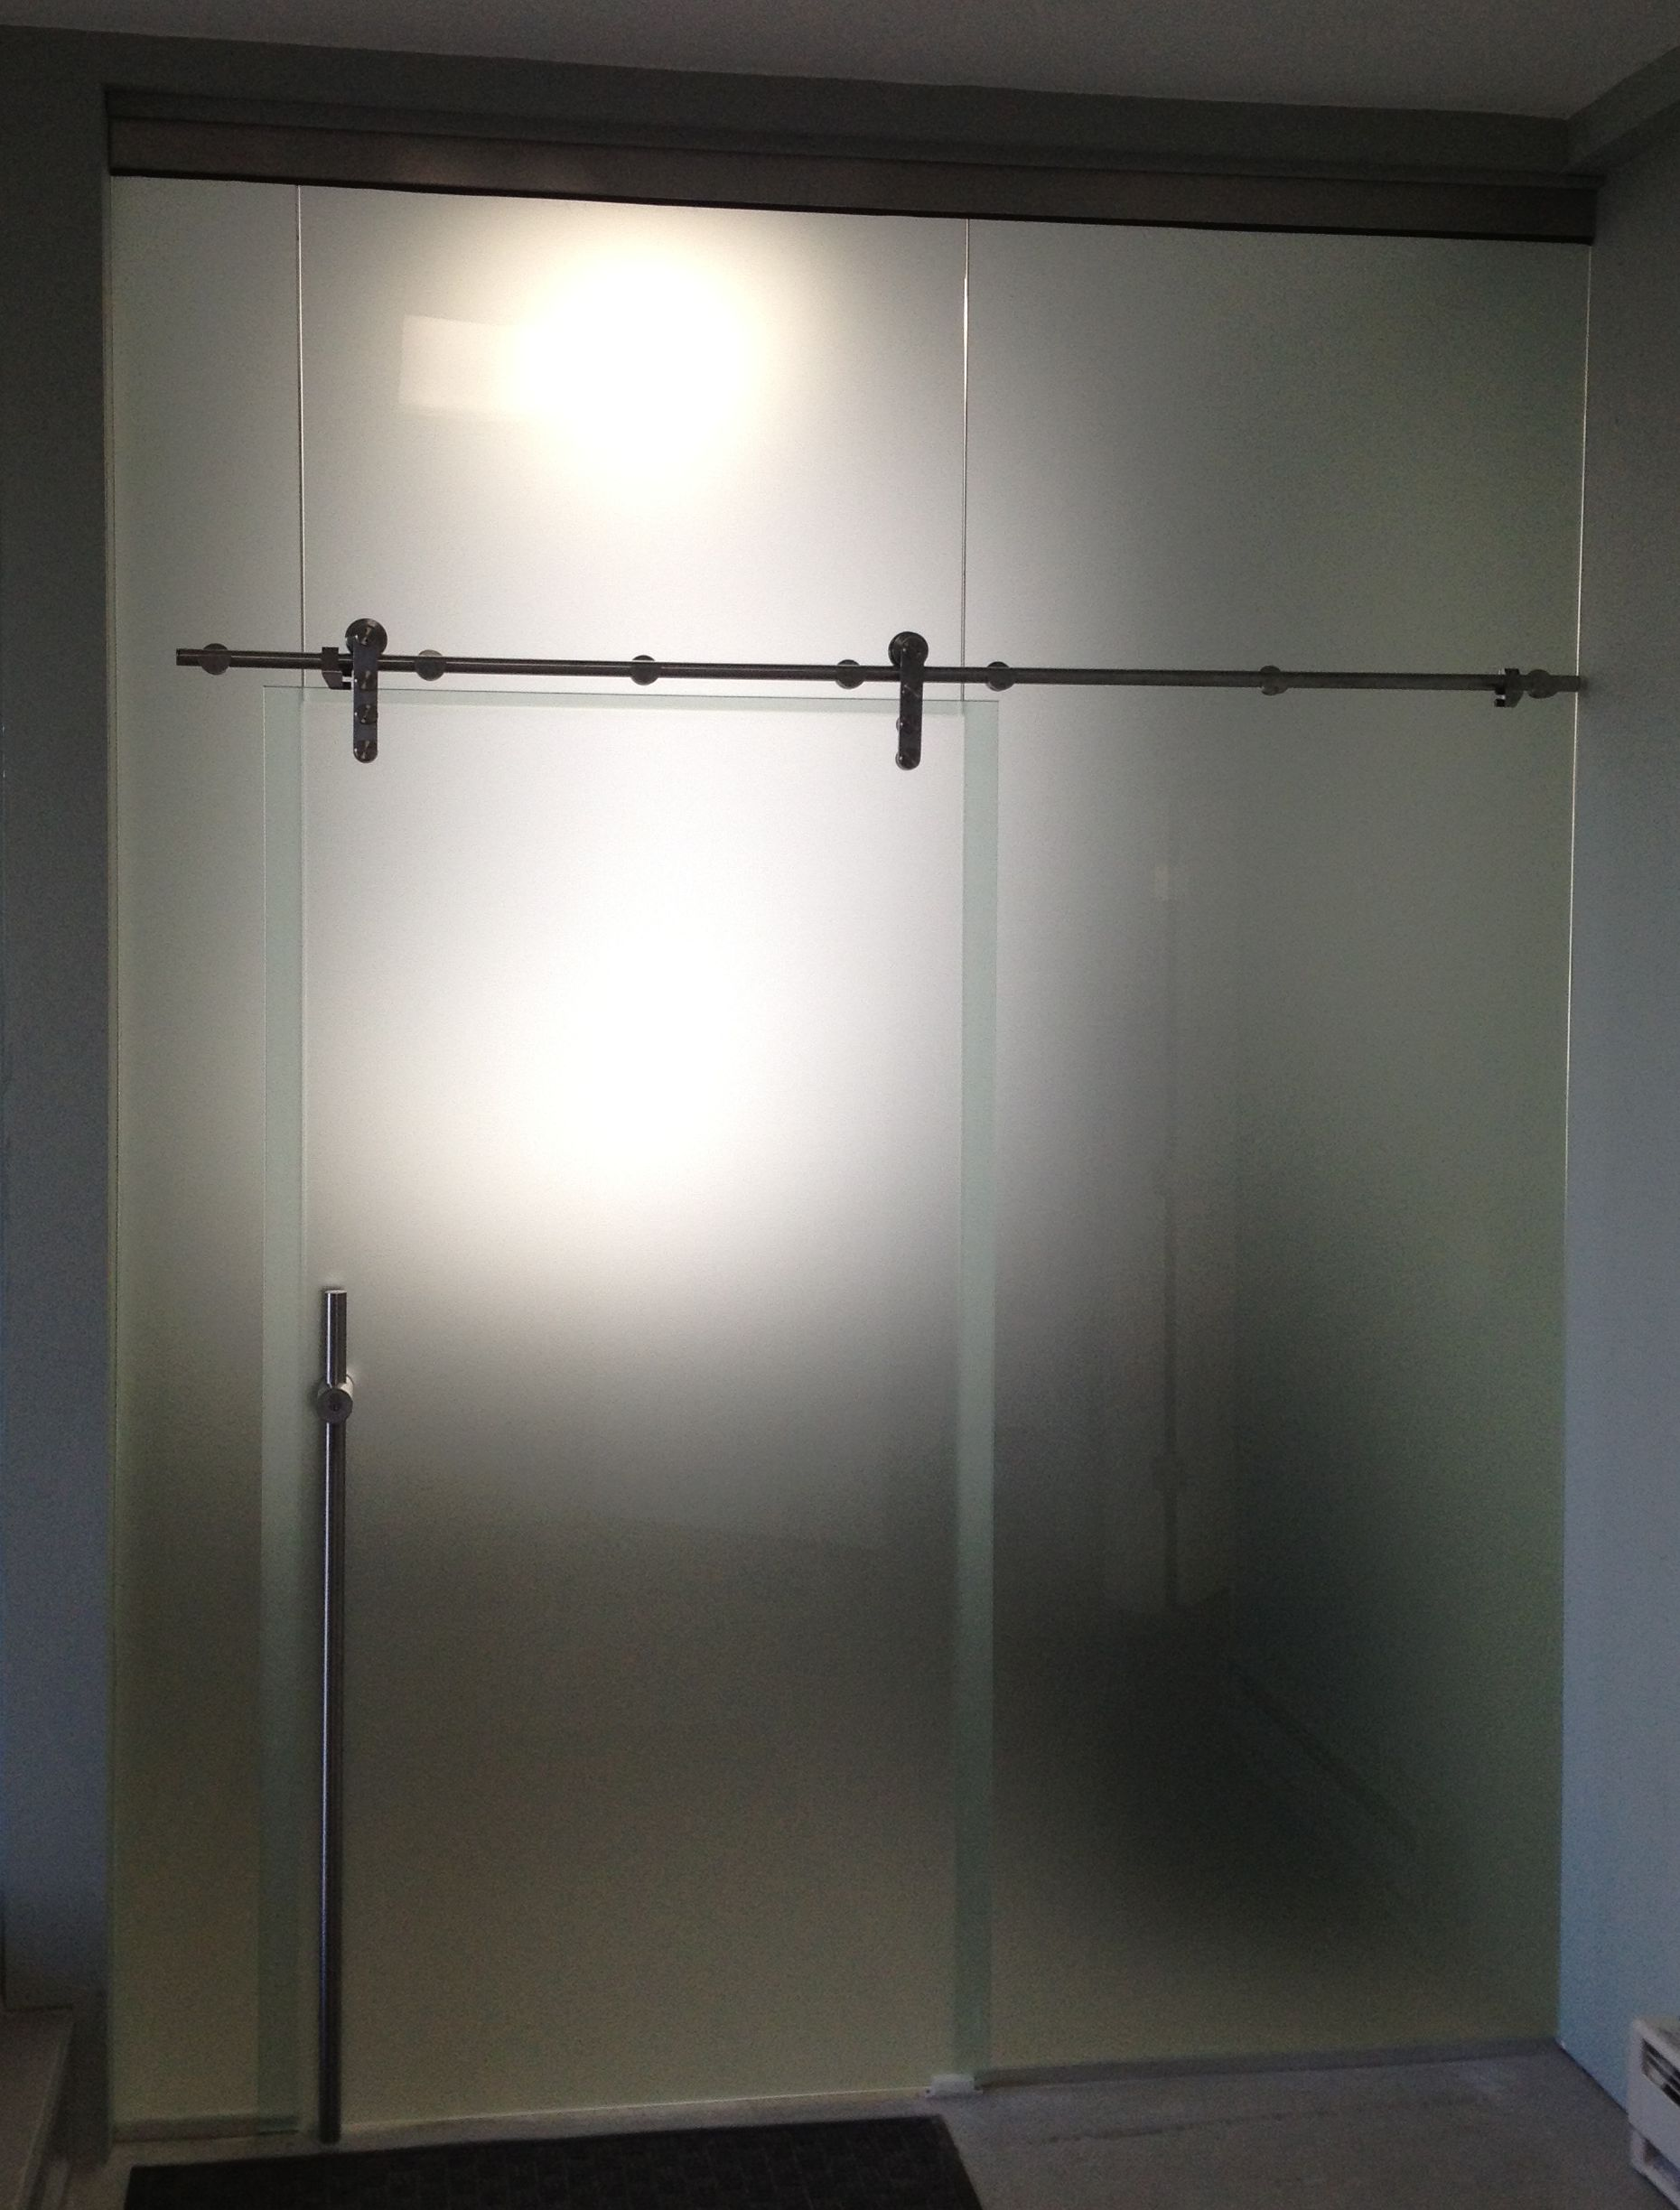 Architectural Easco Shower Doors